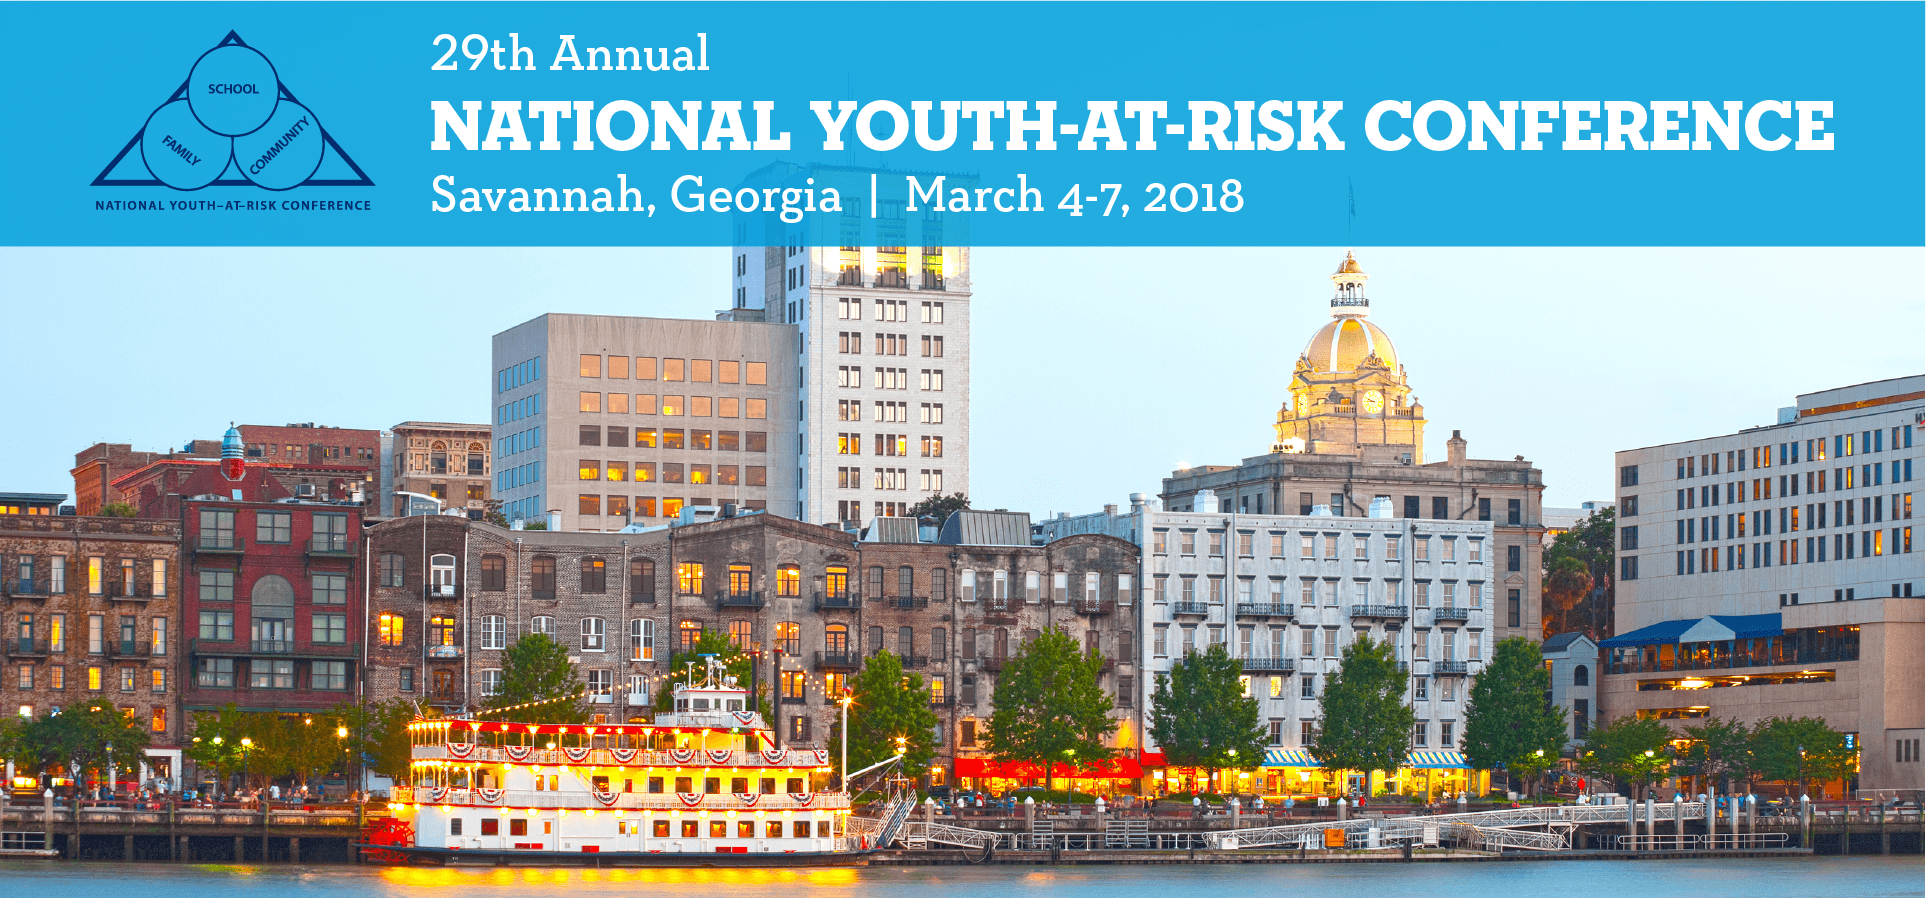 29th Annual National Youth-At-Risk Conference